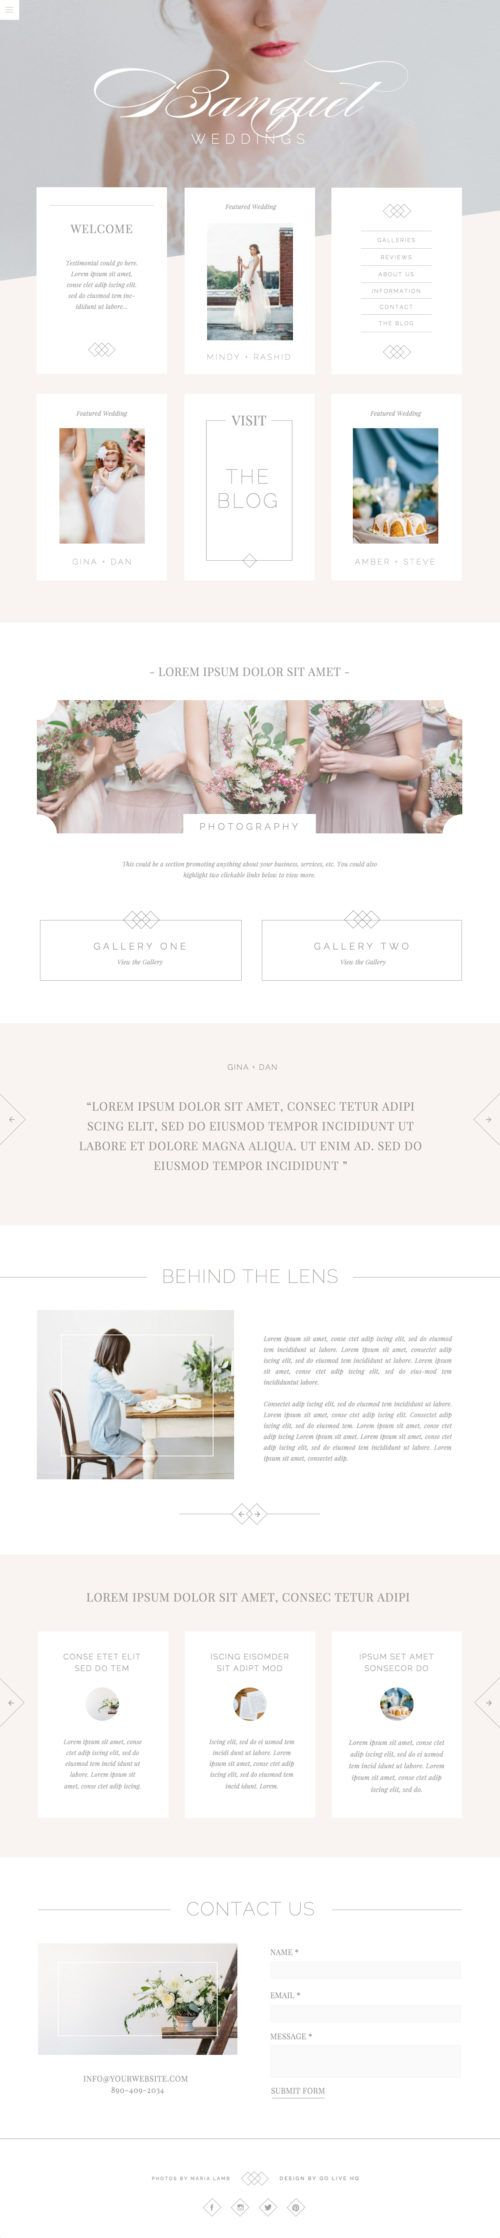 Showit 5 Premium & Free Photography Website Templates